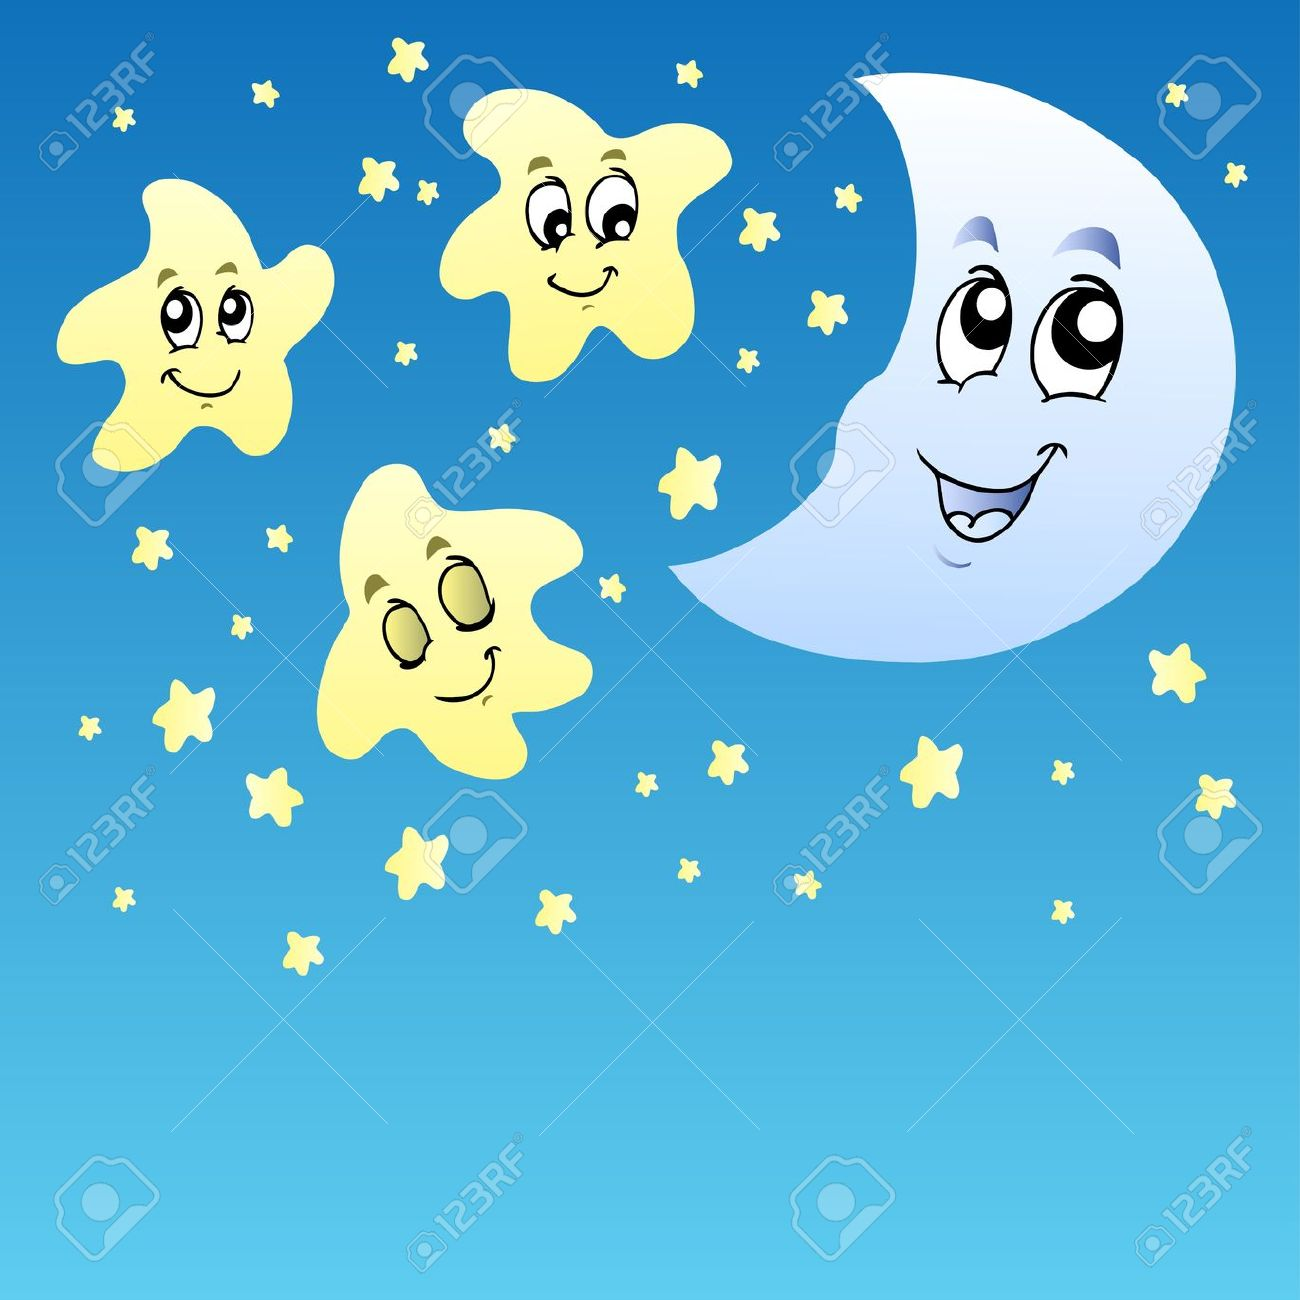 Moon and stars at night clipart.